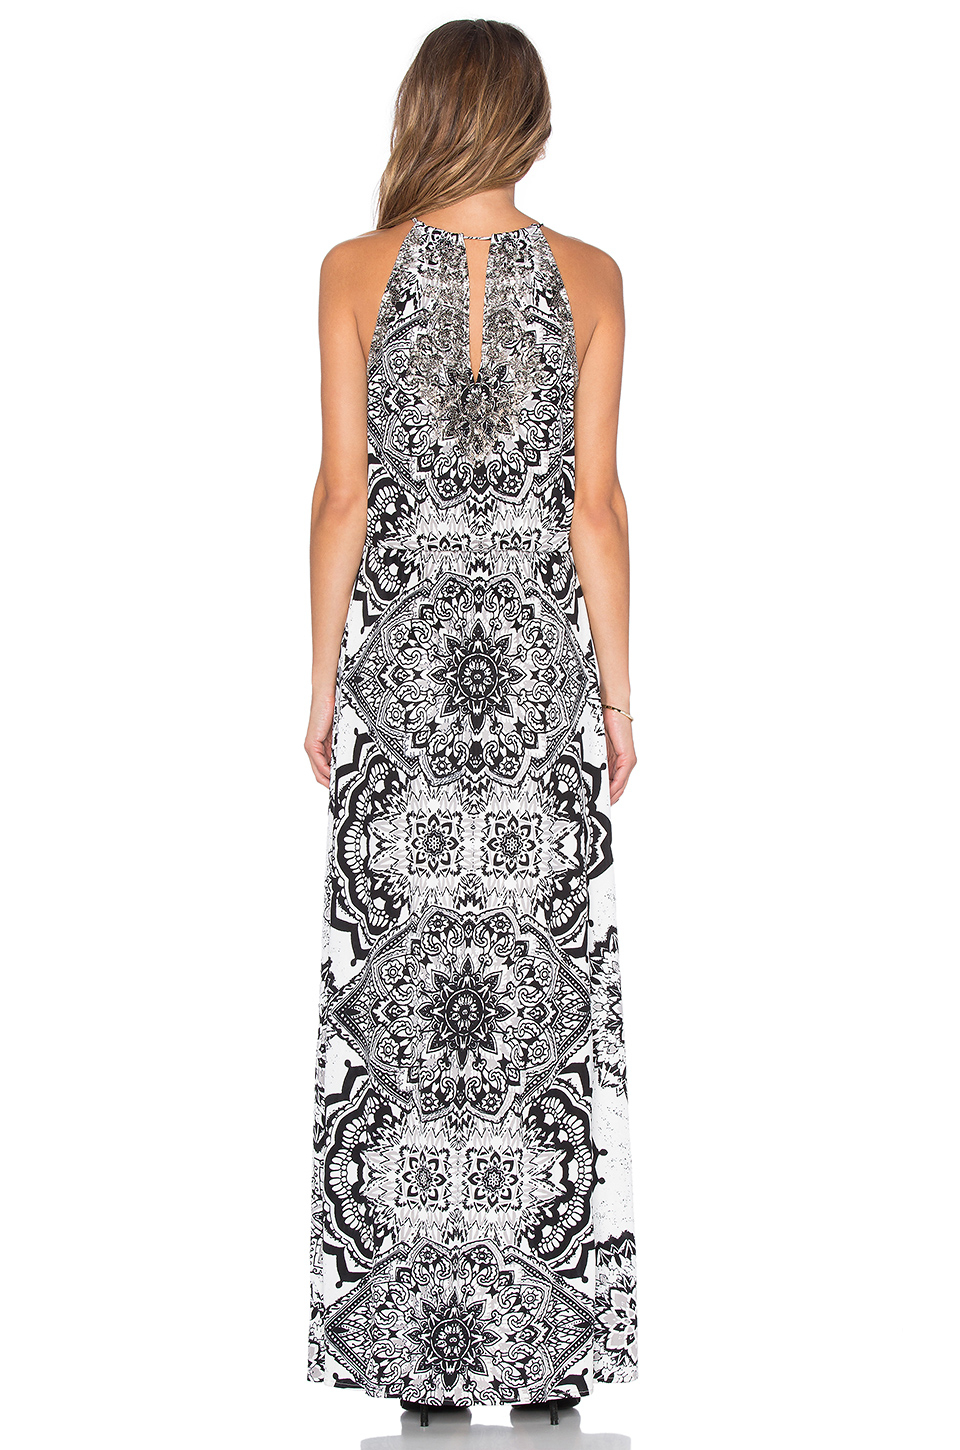 Lyst - Parker Madera Maxi Dress in White 7bdfd519a